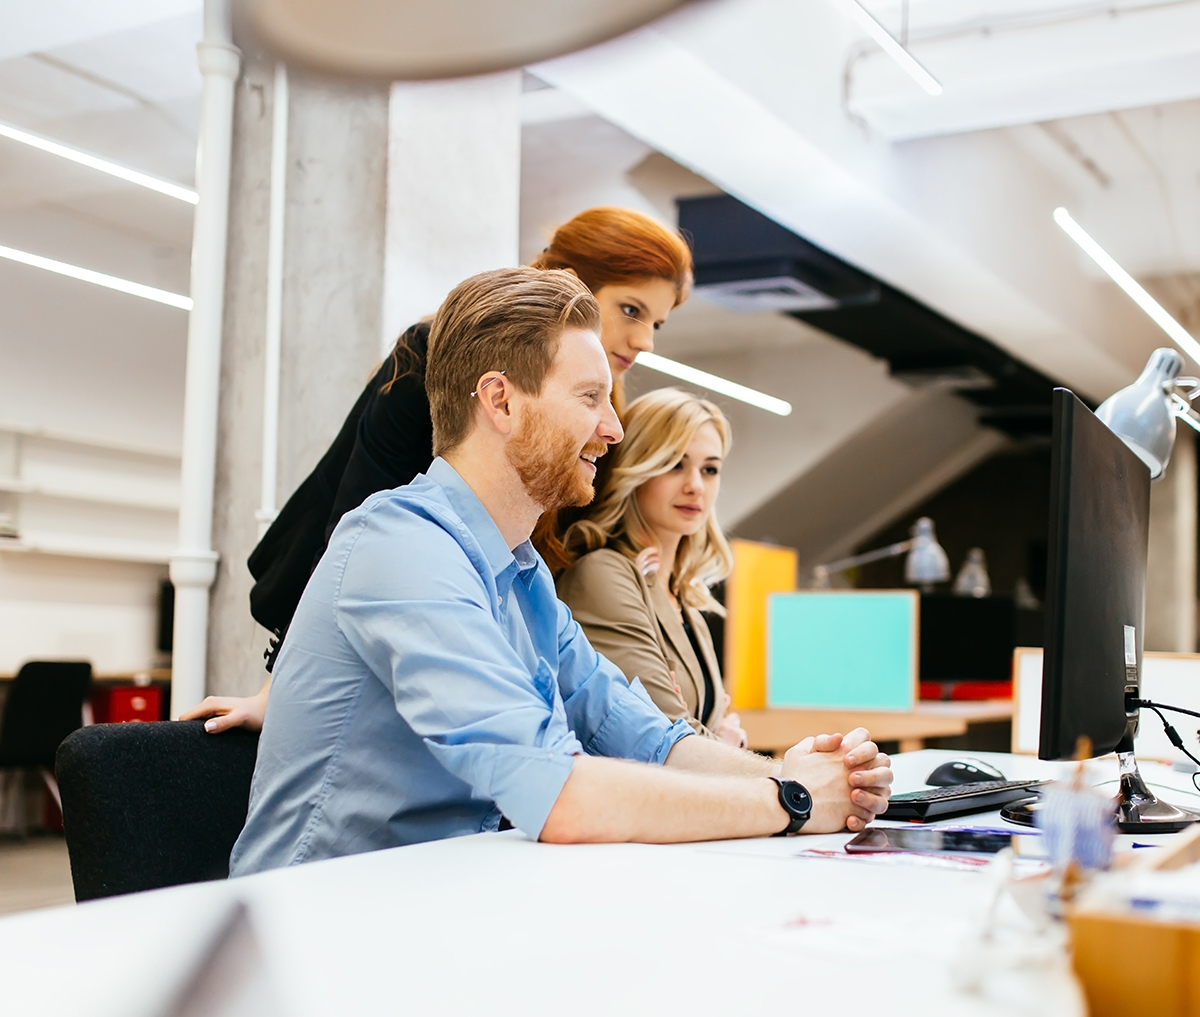 Business people collaborate in office